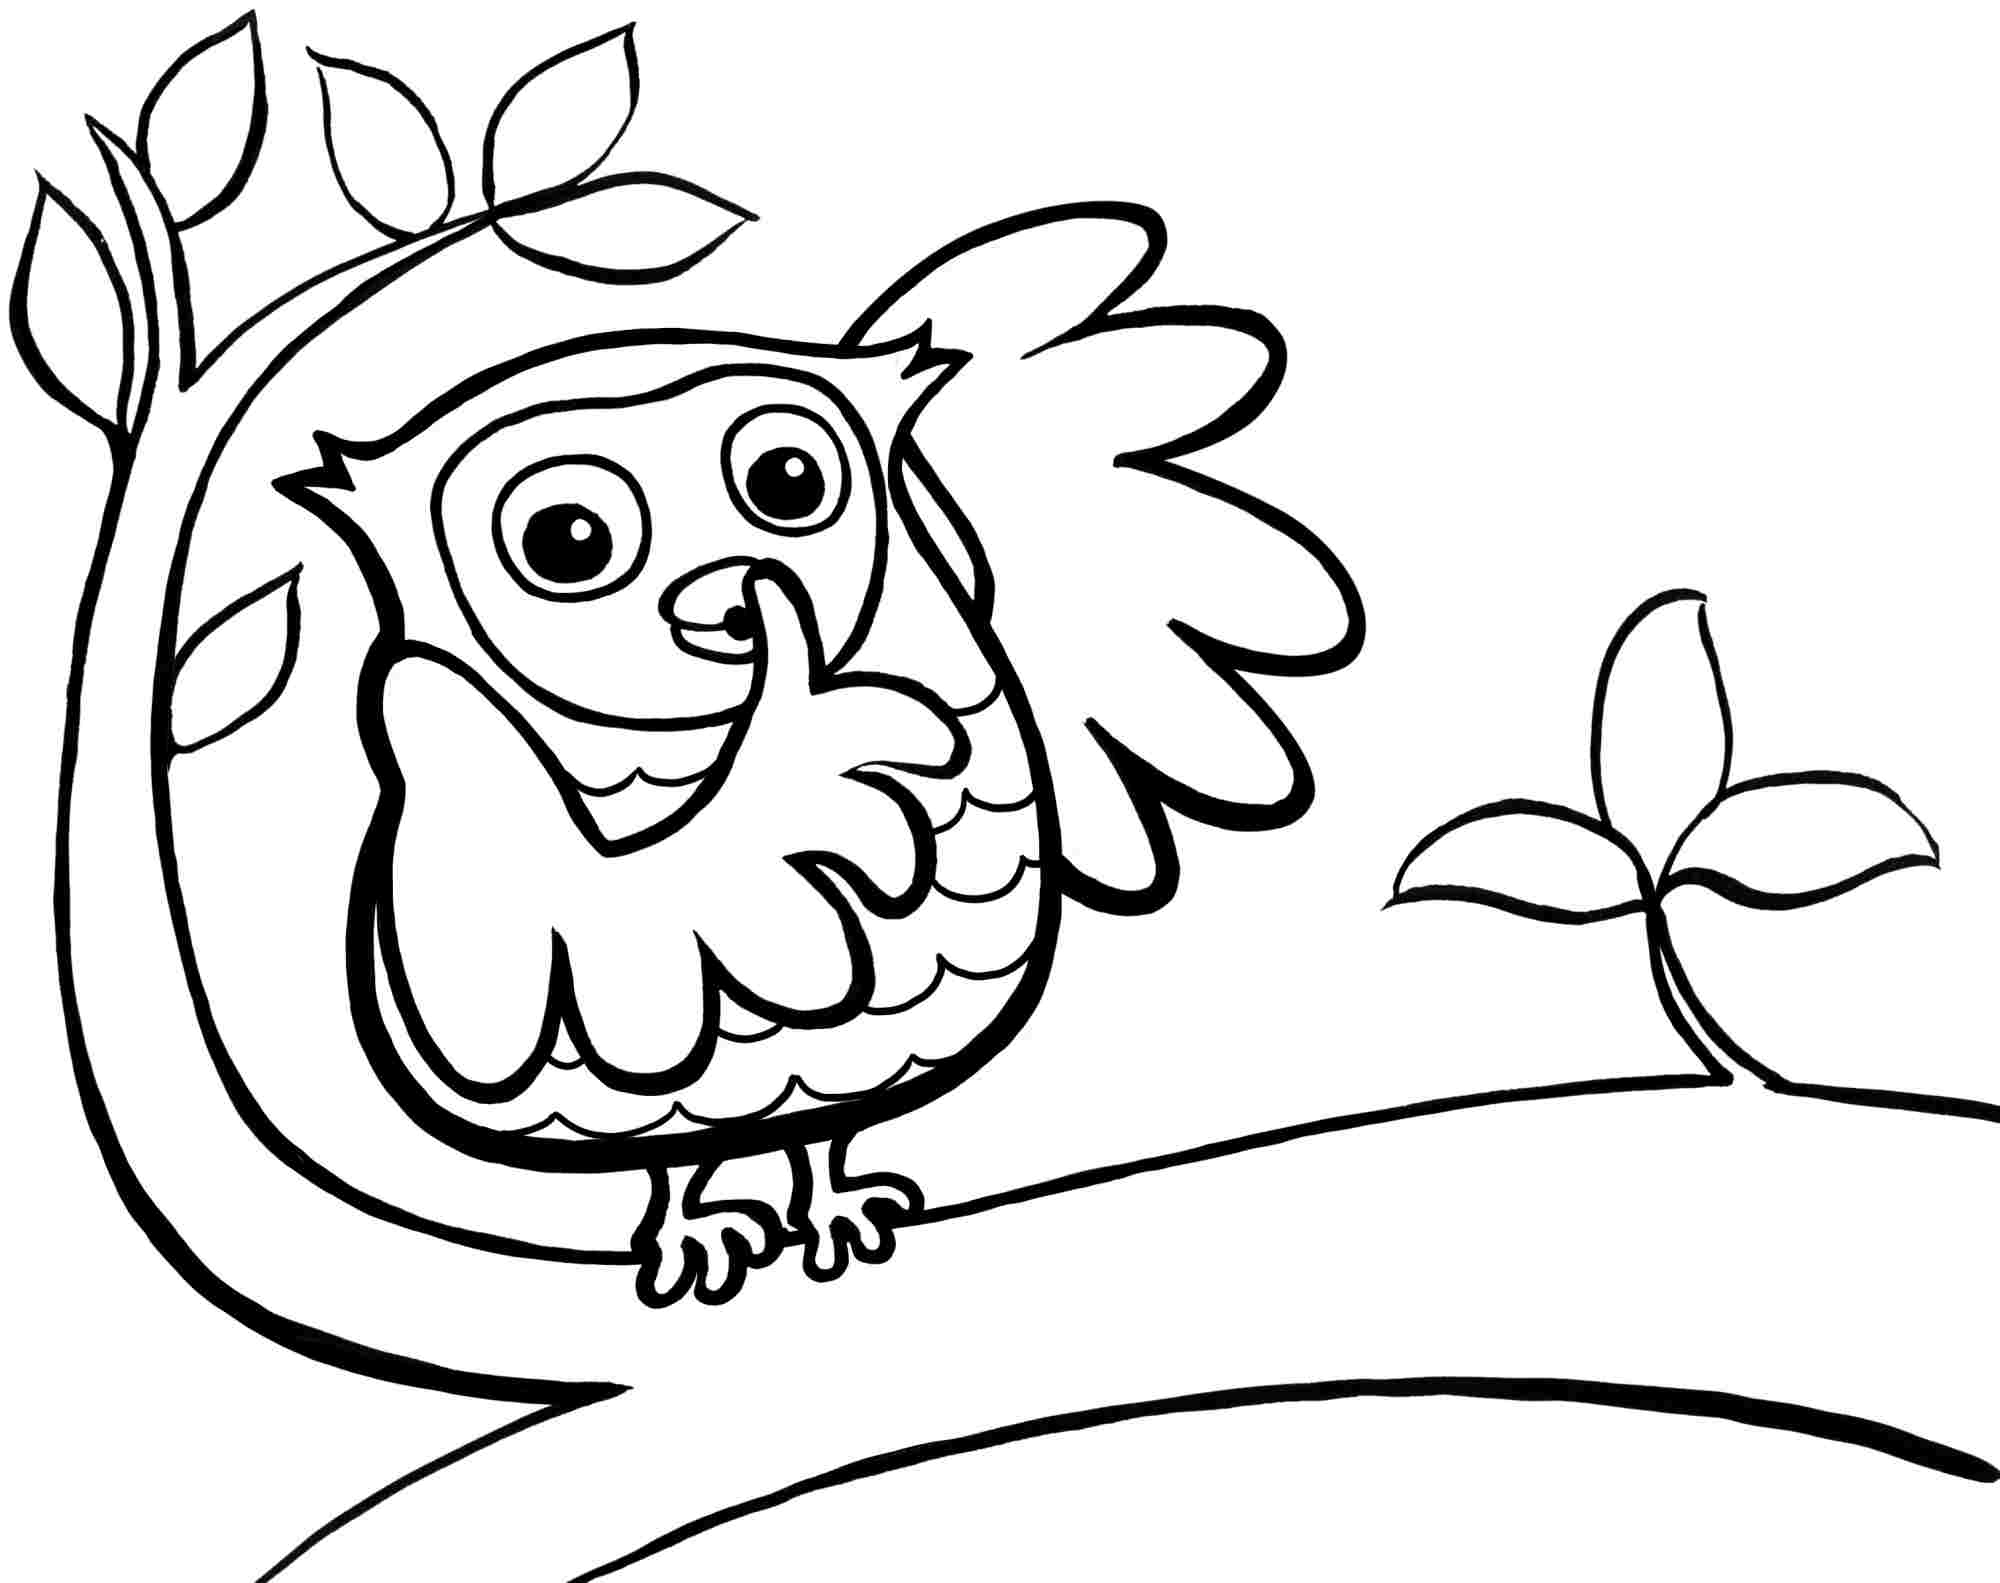 Pdf Coloring Pages For Kids Coloring Pages Coloring For Kindergarten Pdf At Free Printable